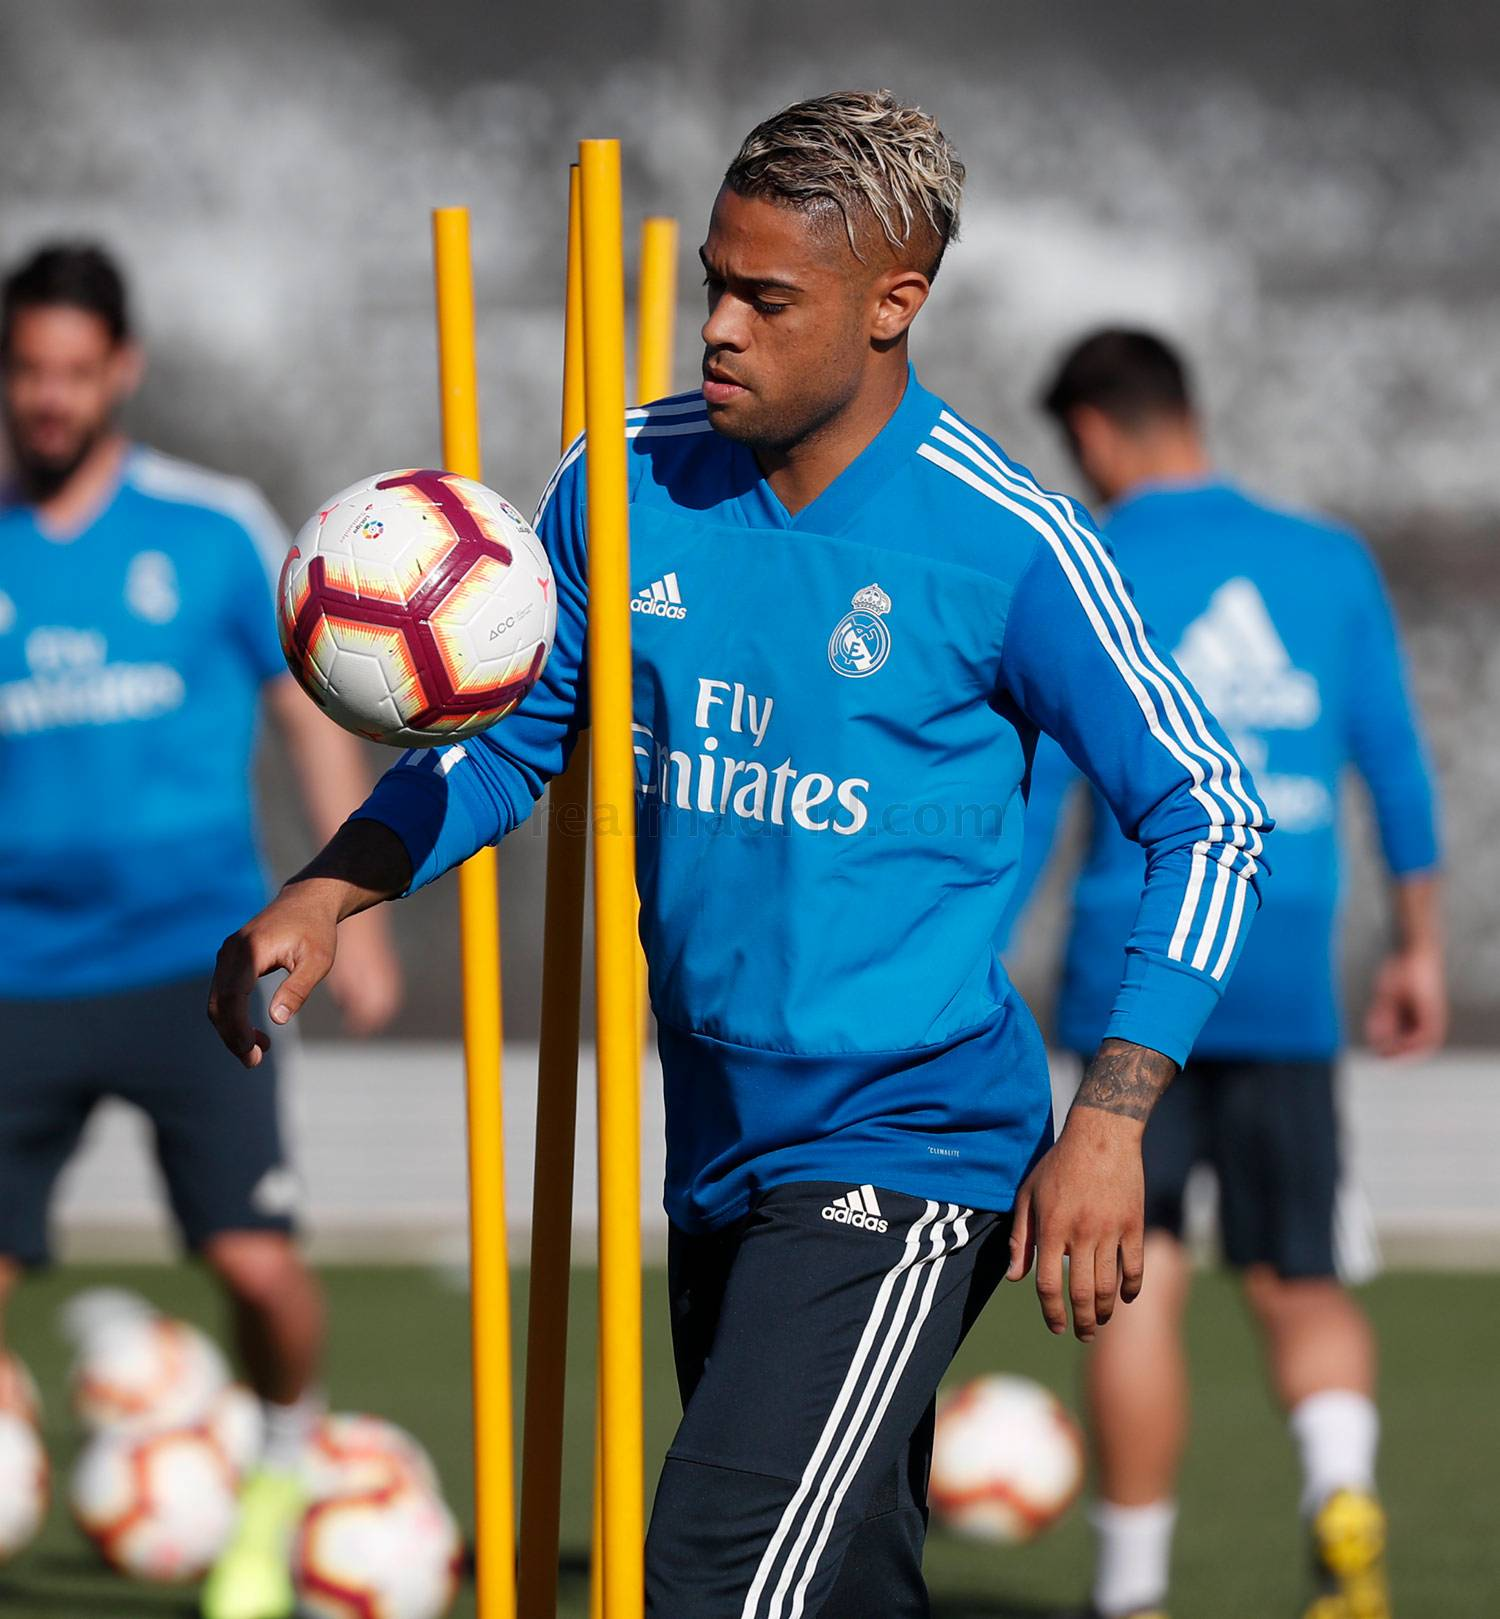 Real Madrid - Entrenamiento del Real Madrid - 25-03-2019